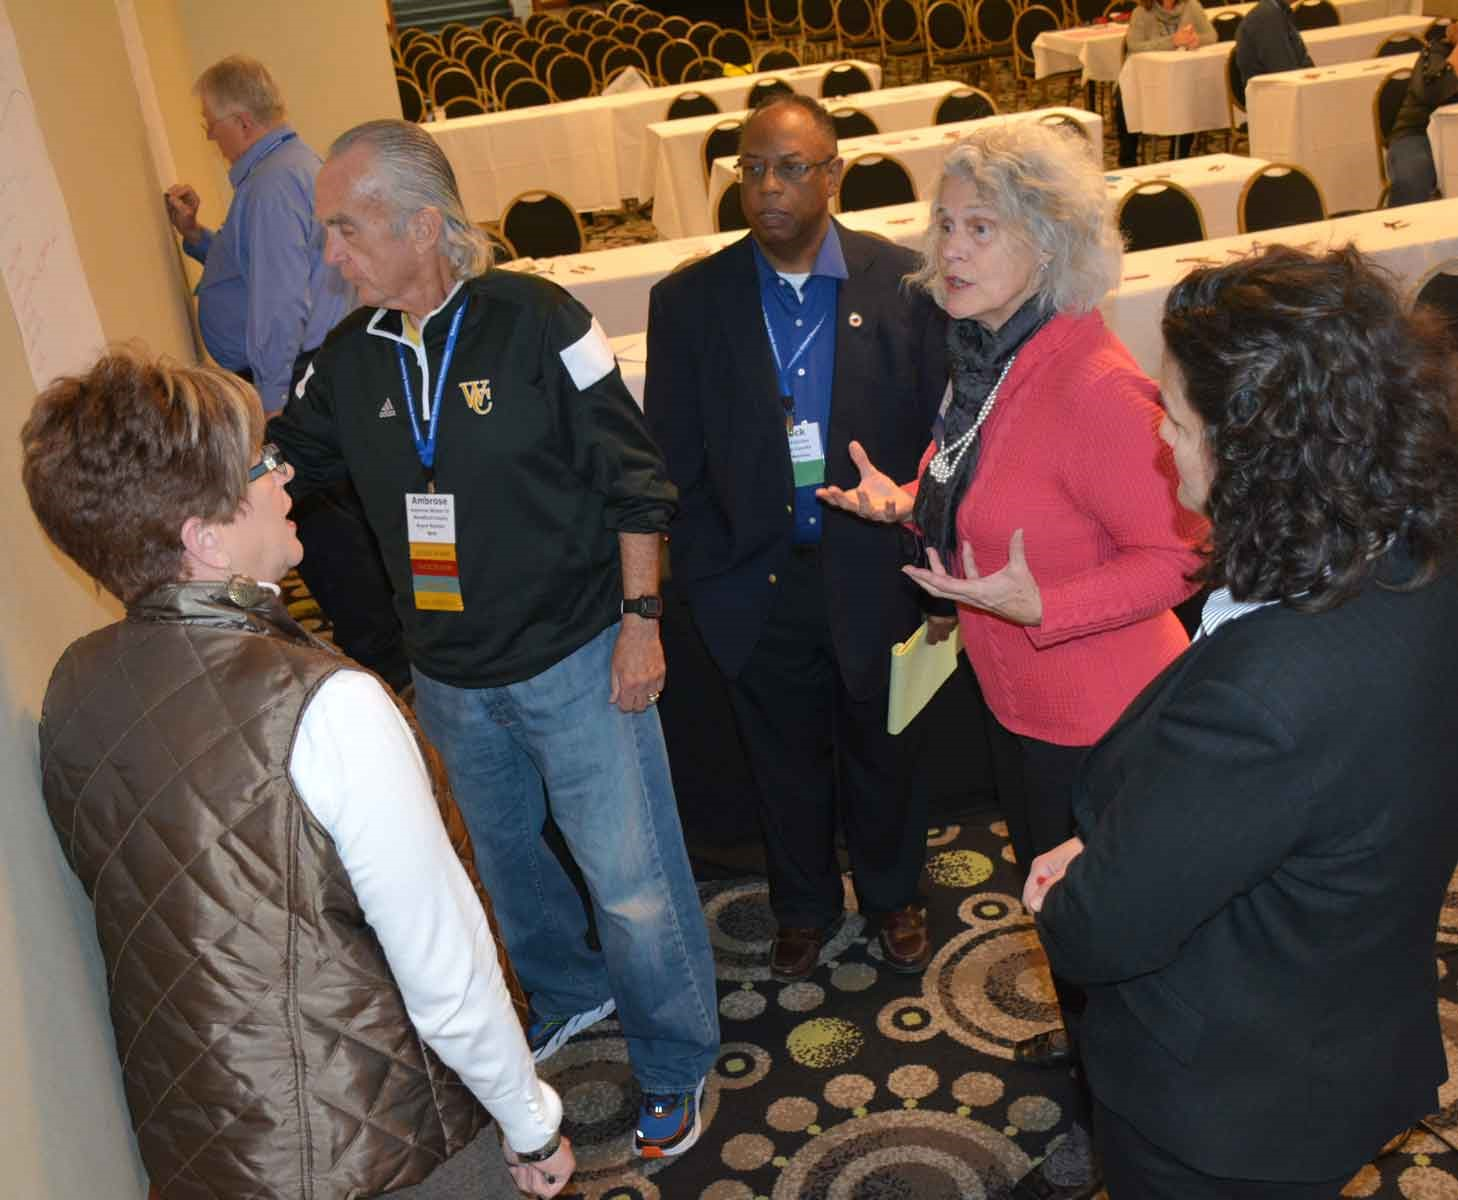 Mimi Becker, the executive director of the Arts Commission of Danville/Boyle County, interacts with attendees during a clinic session at the conference.